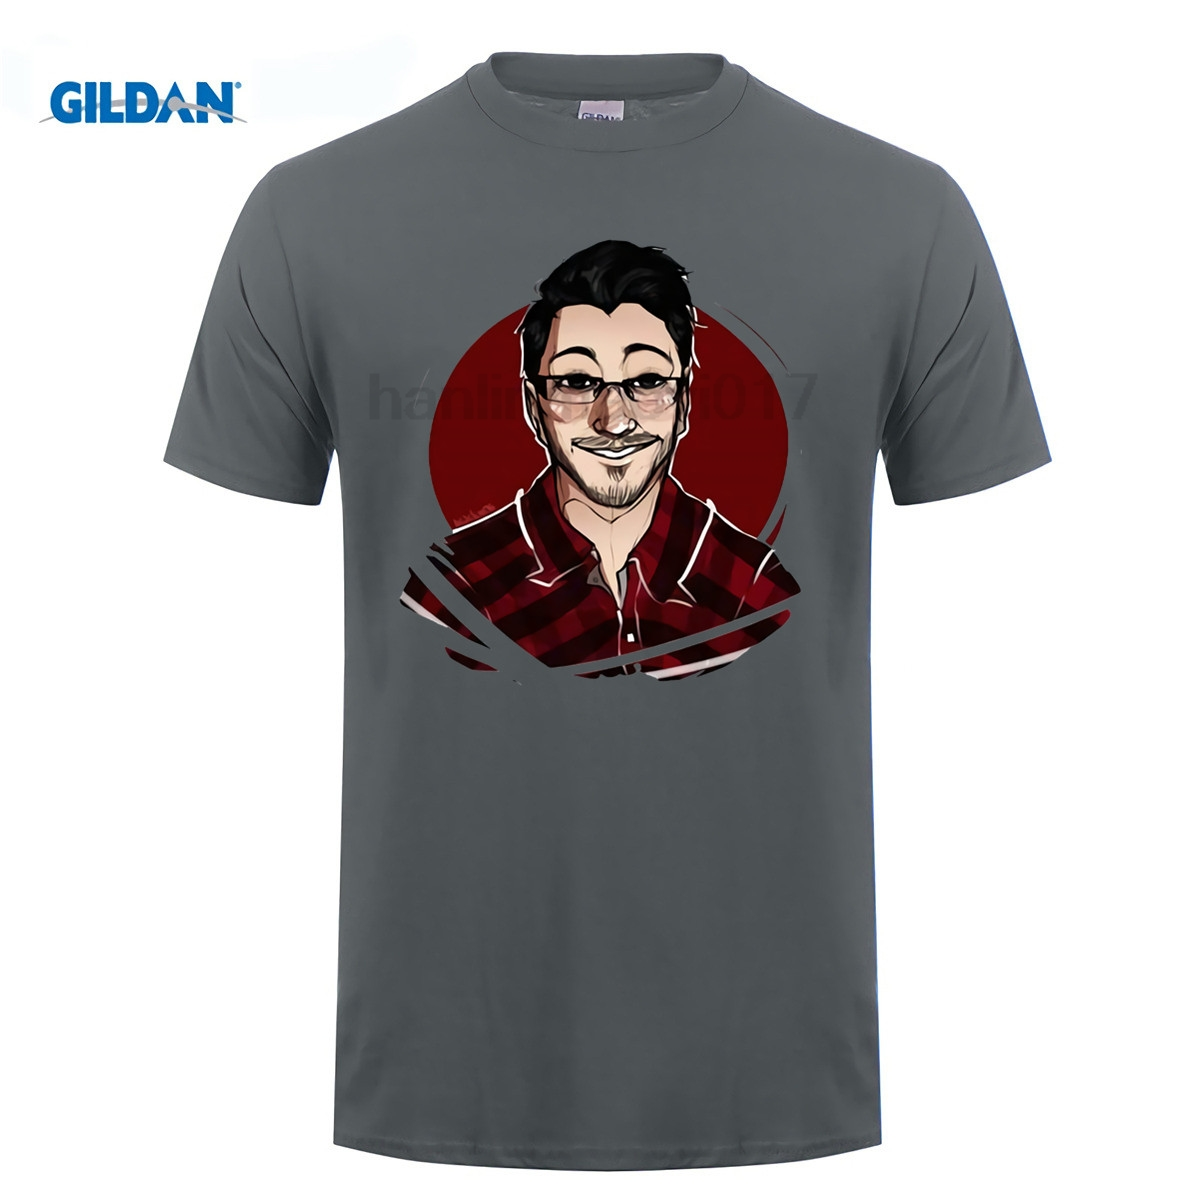 GILDAN video game t shirts Funny Teenage Markiplier and Jacksepticeye Printed T-shirts Boy Soft Tshirt